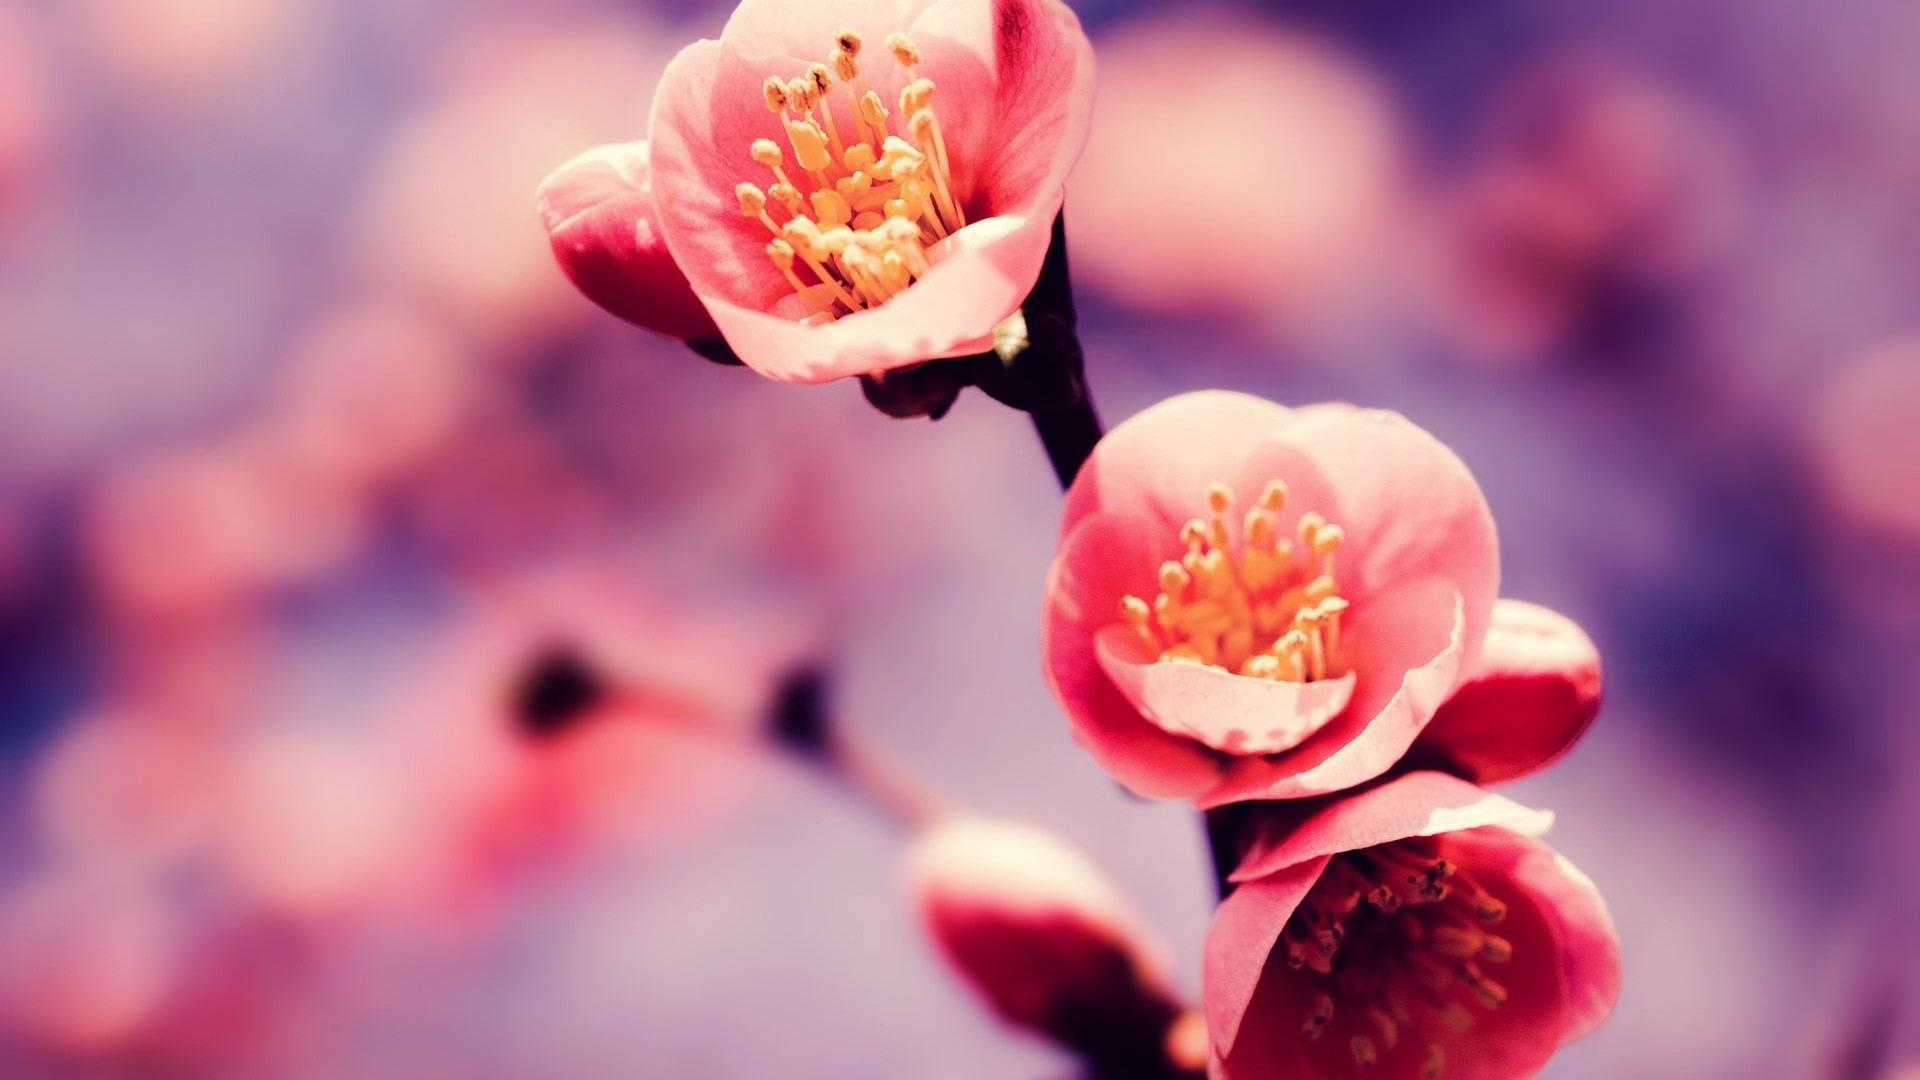 Spring Desktop Backgrounds AirWallpaperCom 1920x1080